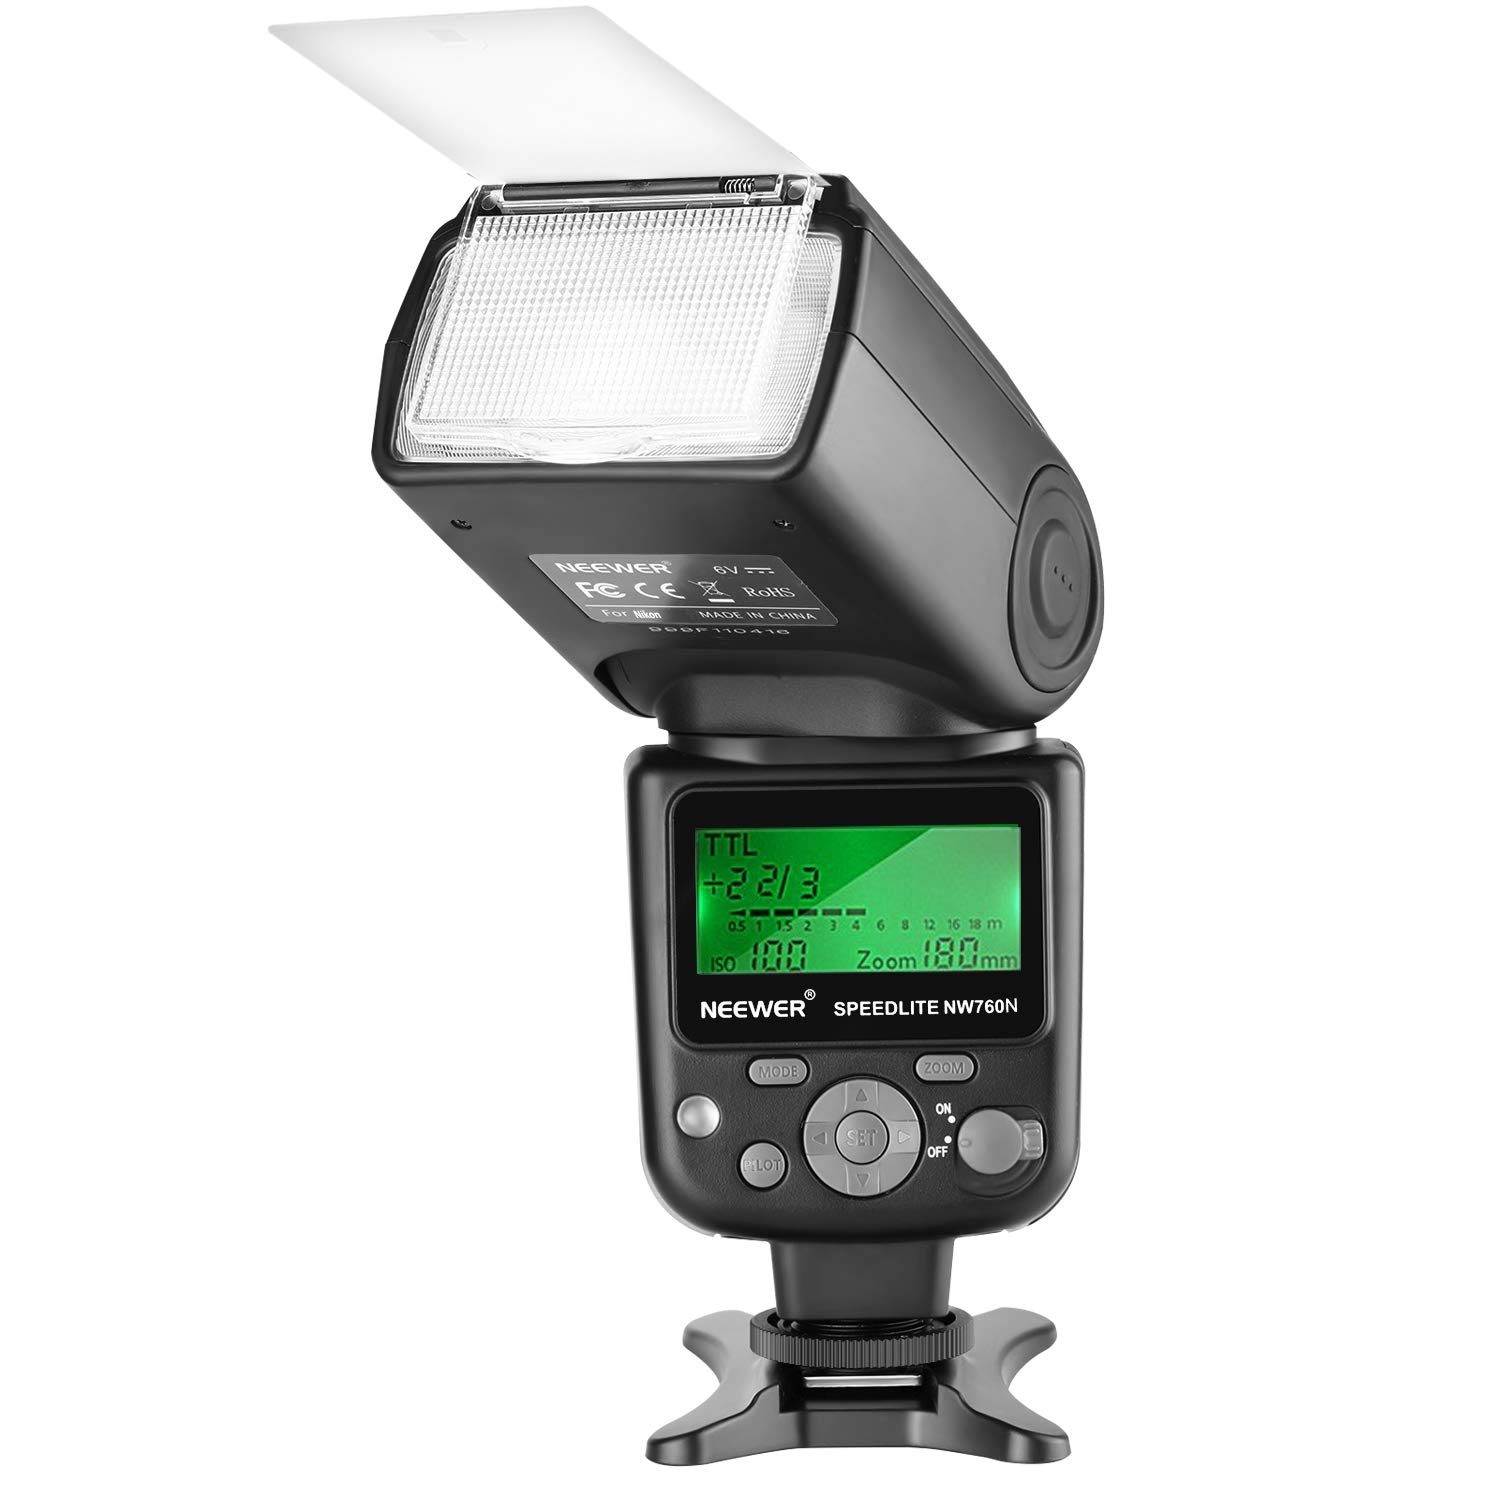 Neewer NW760 Remote TTL Flash Speedlite with LCD Display for Nikon D7200 D7100 D7000 D5500 D5300 D5200 D5100 D5000 D3300 D3200 D3100 D700 D600 D500 D90 D80 D70 D60 D50 and Other Nikon DSLR Cameras by Neewer